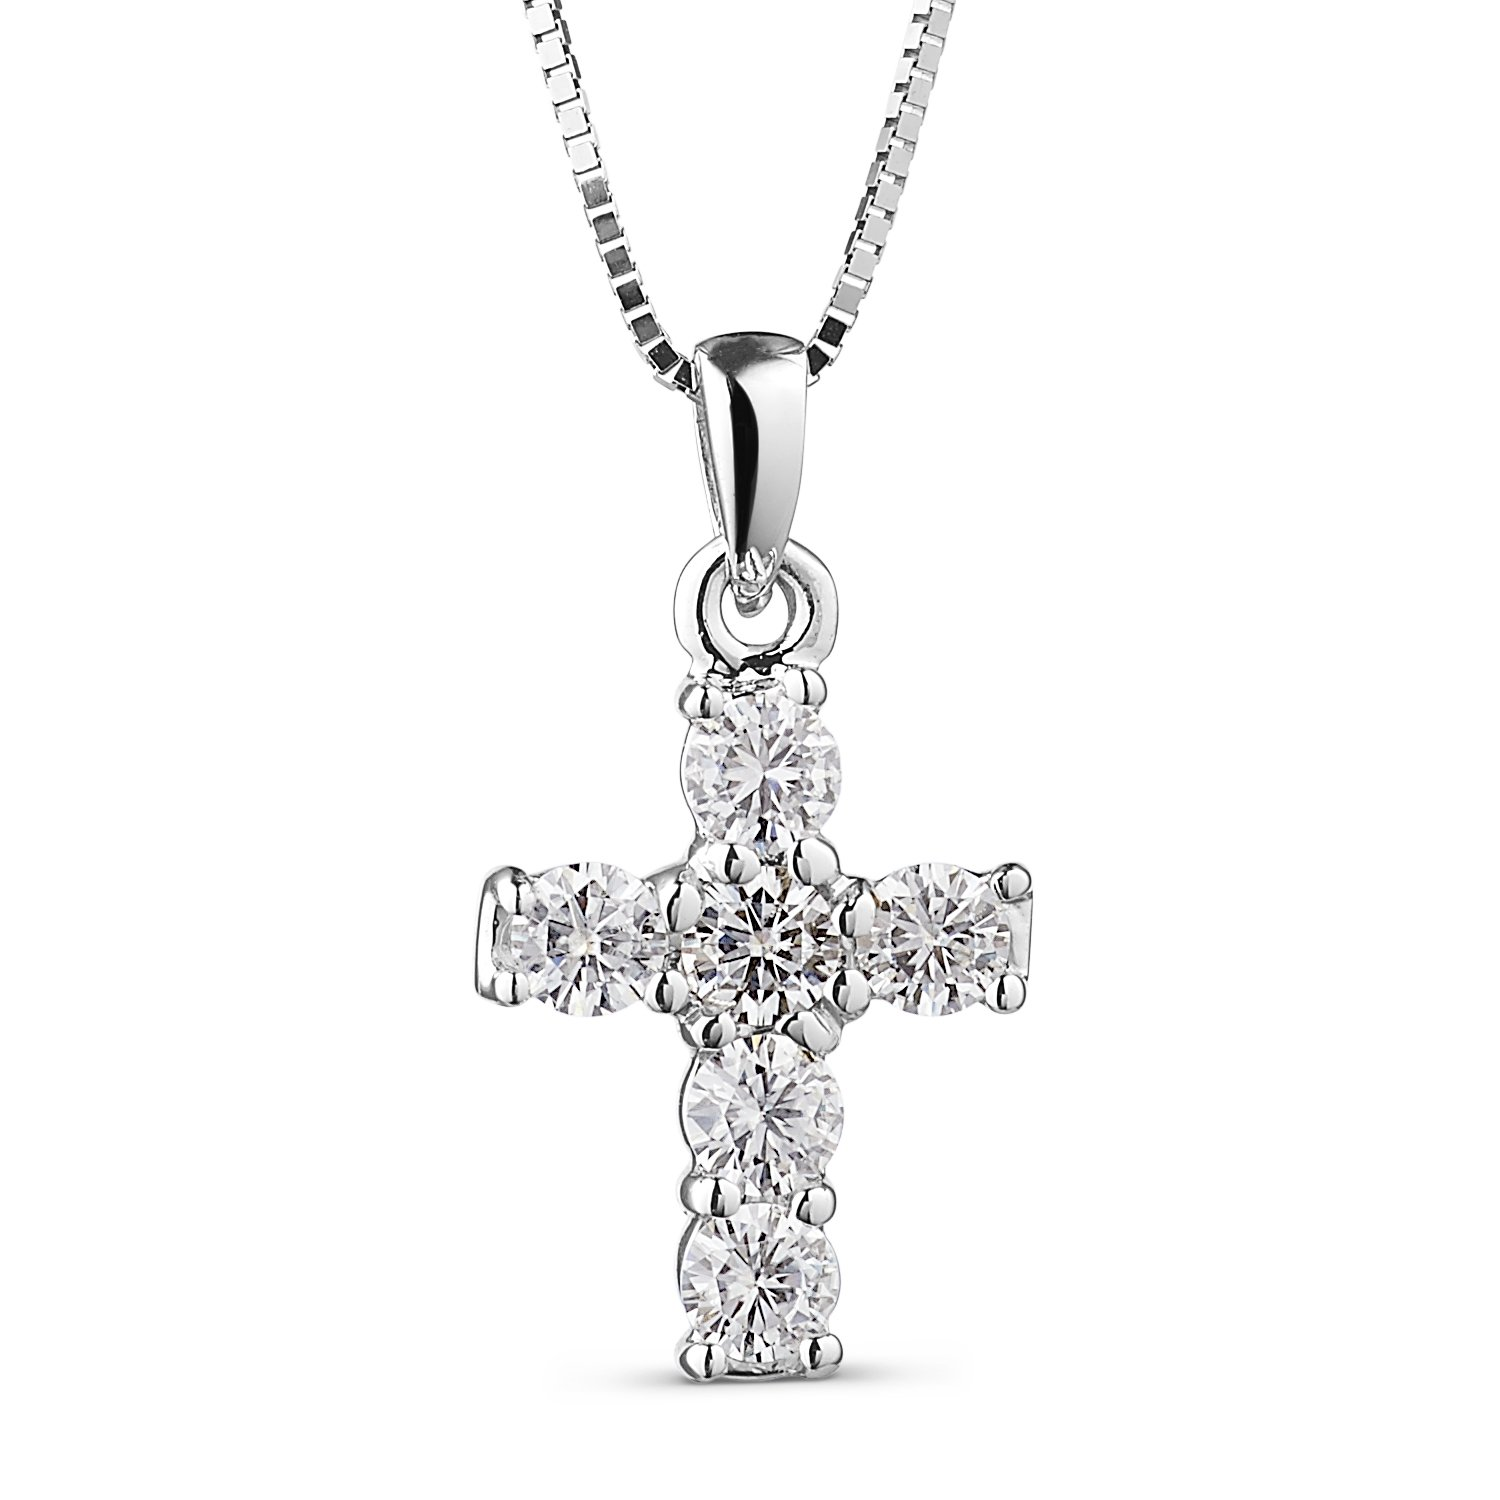 Round Brilliant Cut 2.5mm Moissanite Cross Pendant Necklace, 0.36cttw DEW By Charles & Colvard by Charles & Colvard